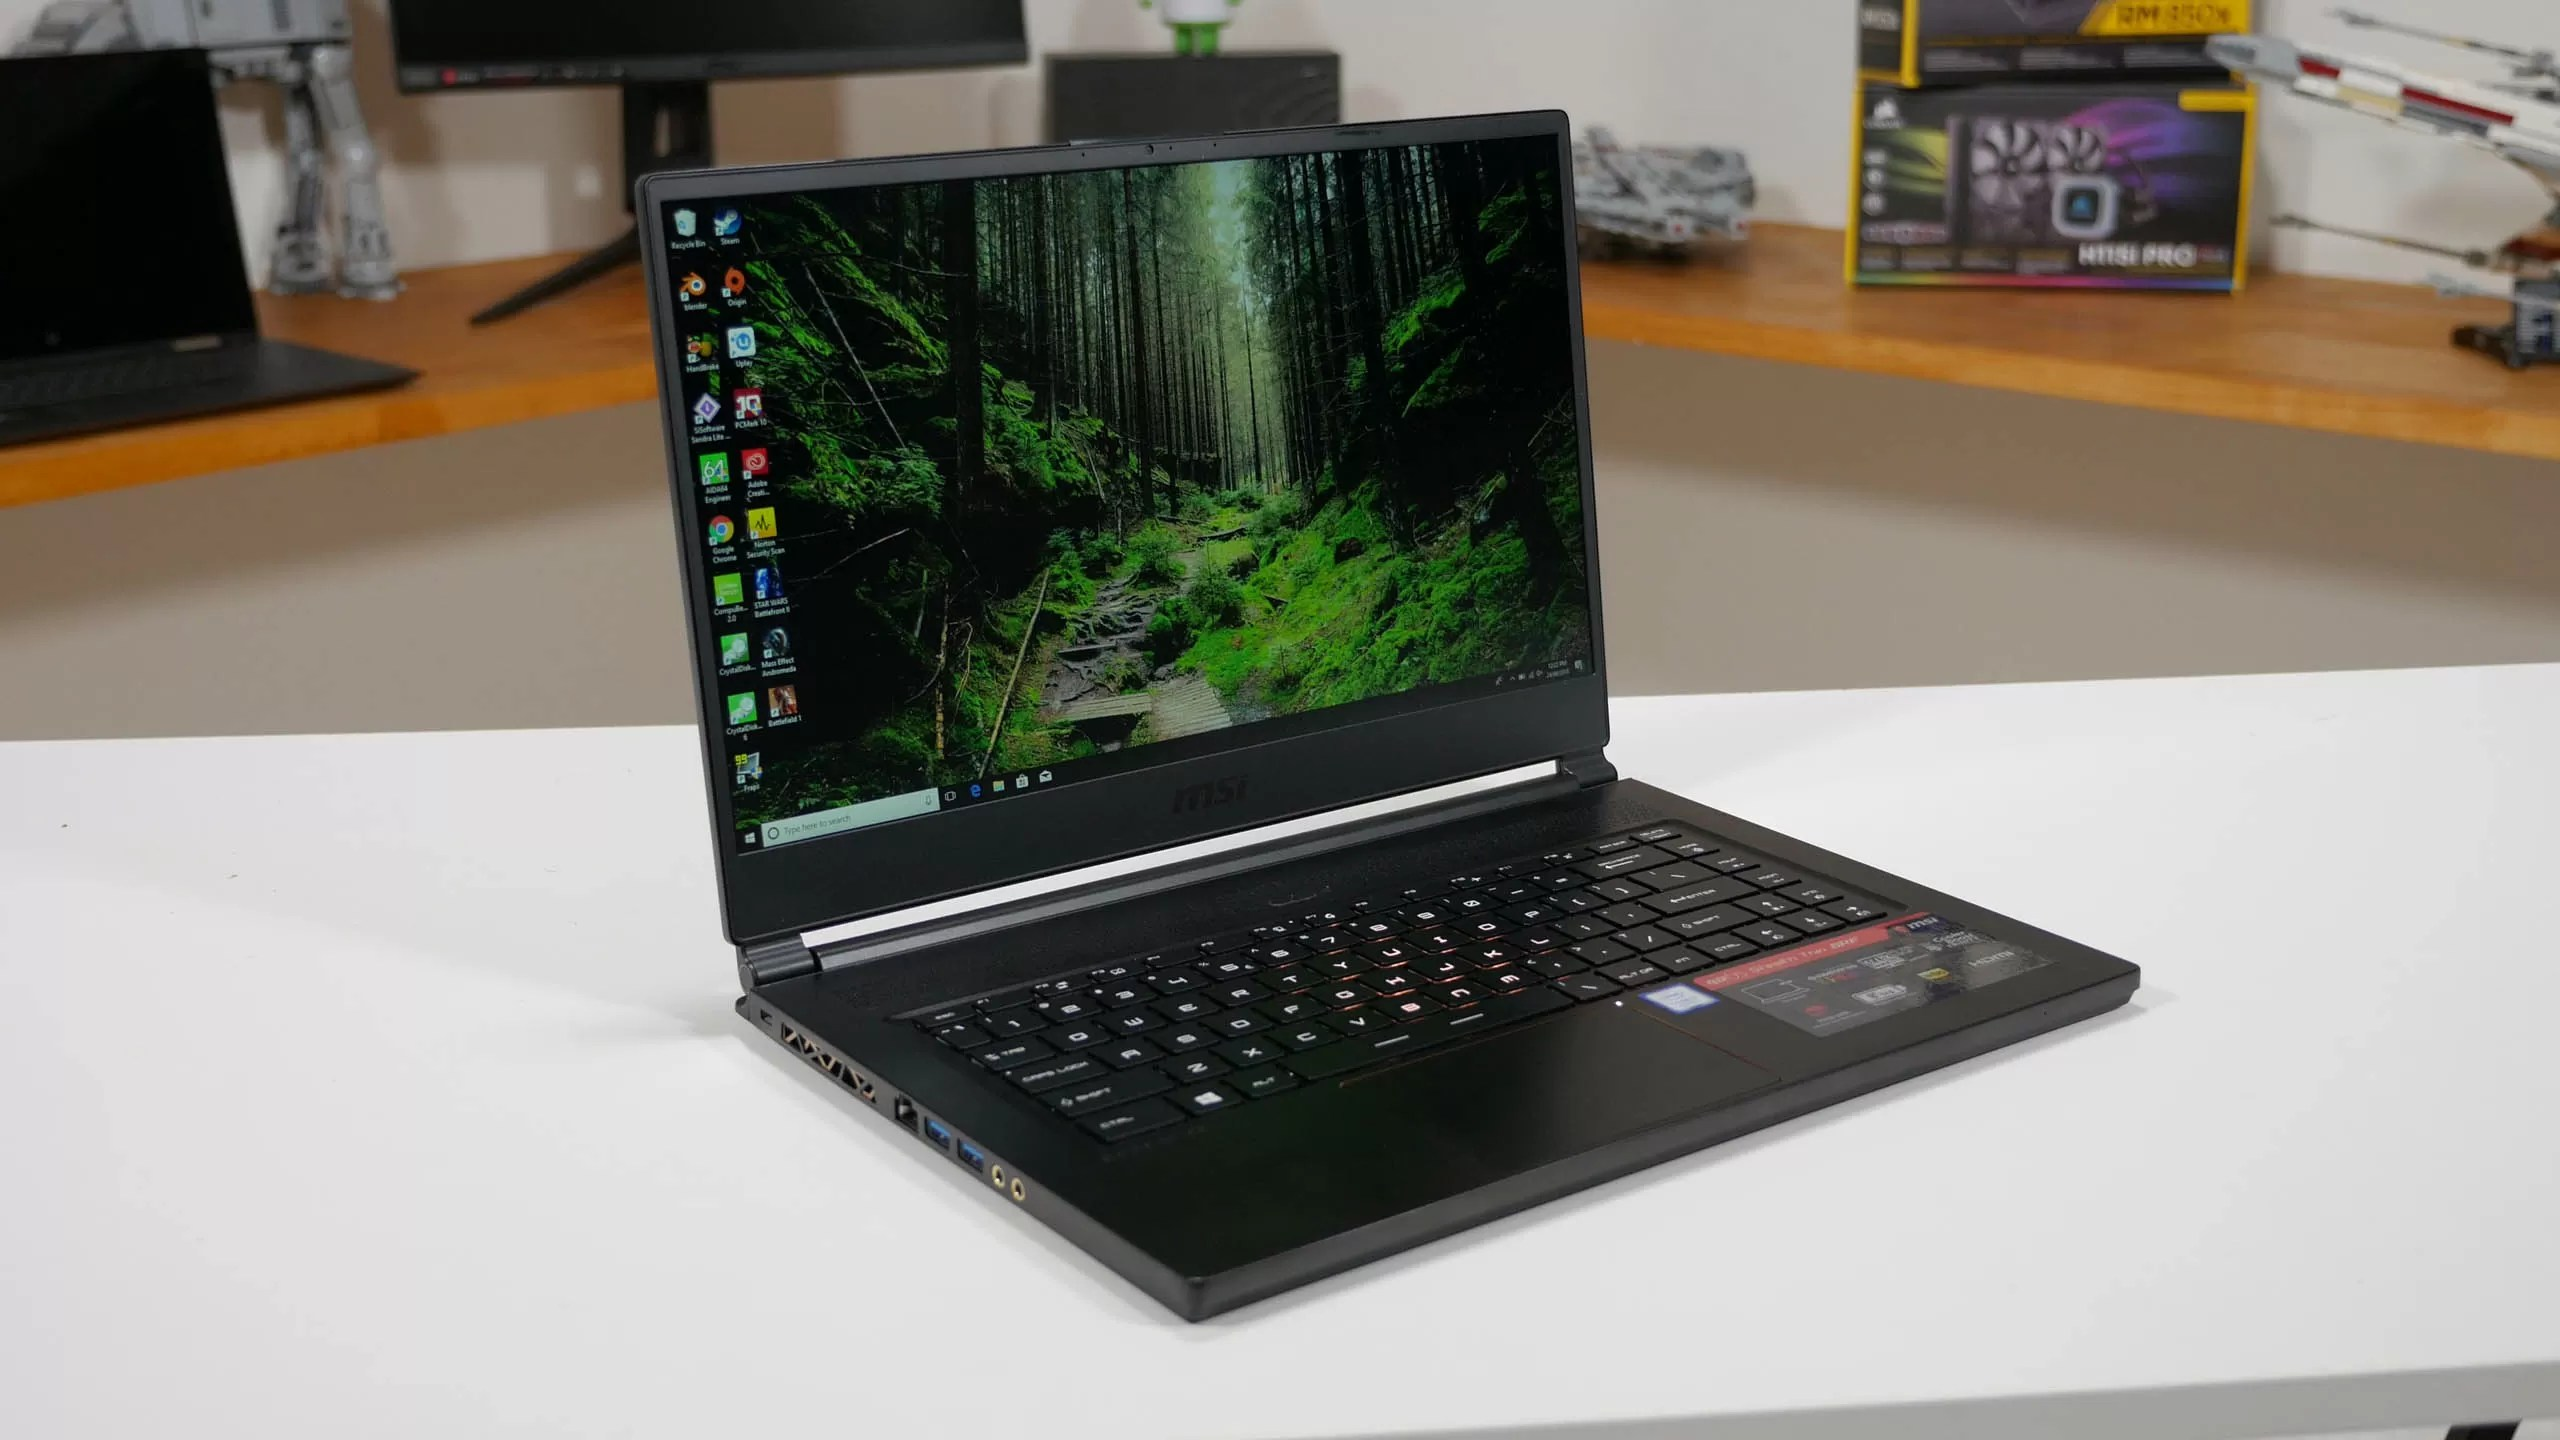 MSI GS65 Stealth Thin Review Photo Gallery - TechSpot